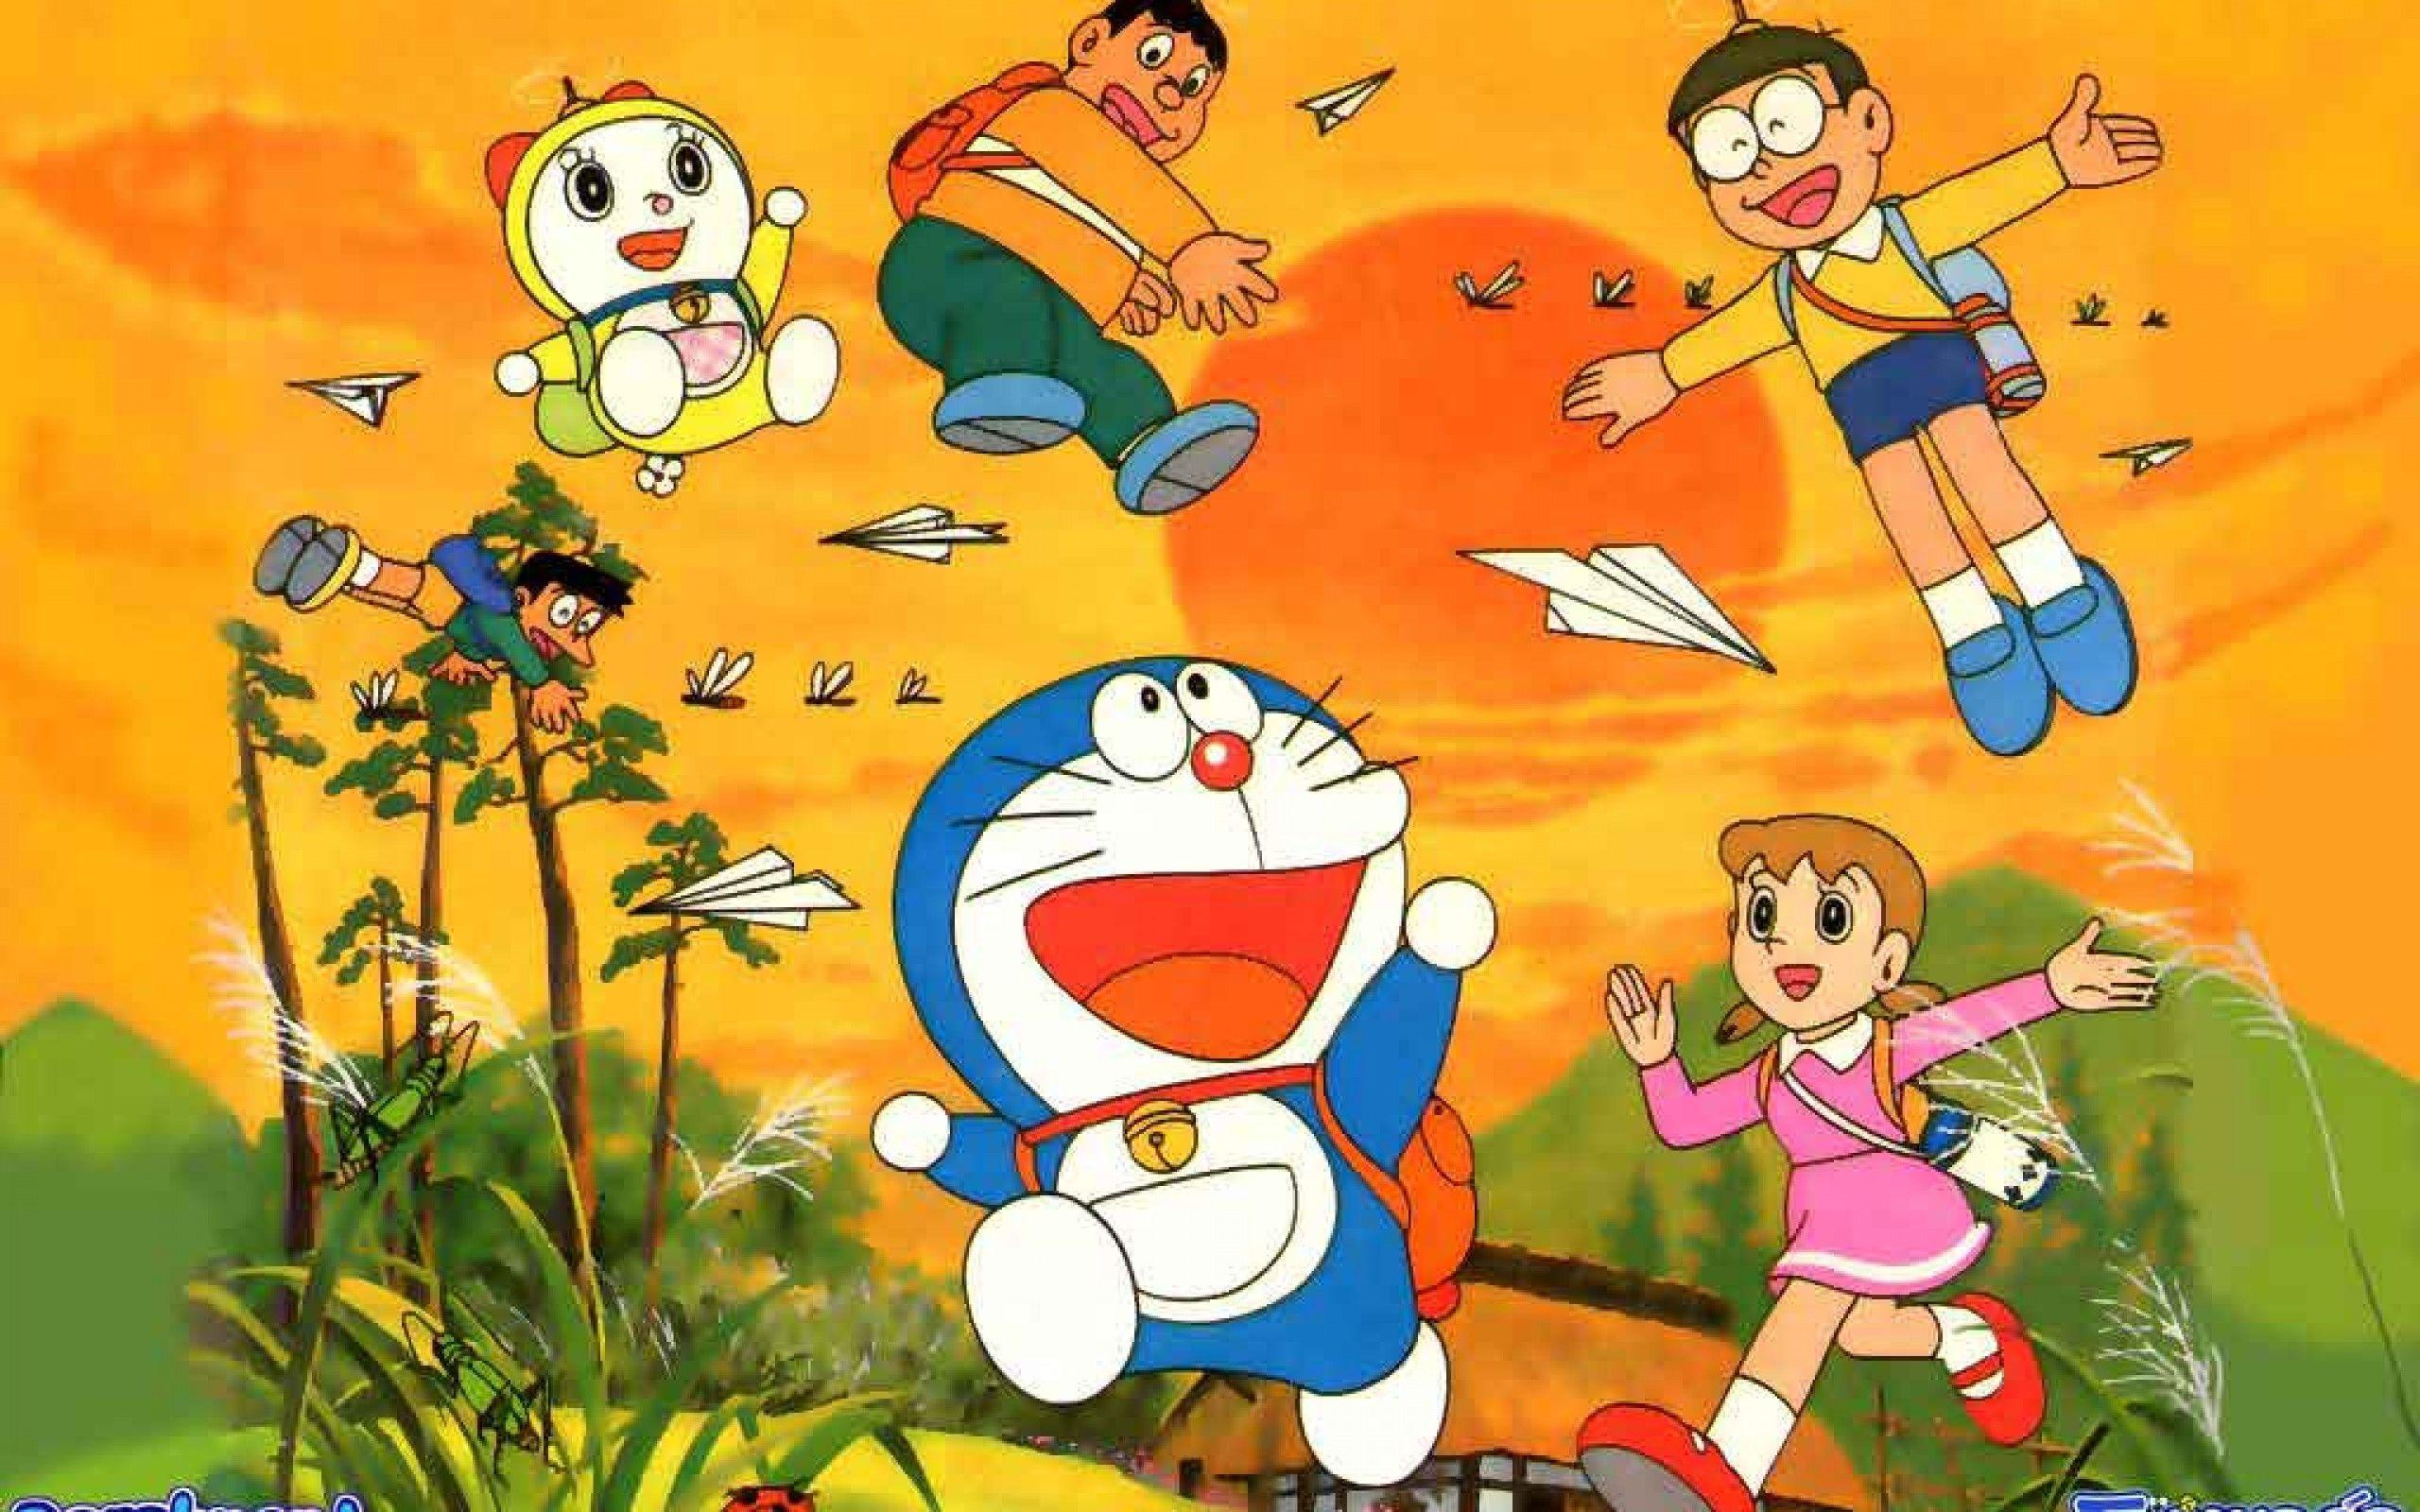 Doraemon And Nobita Best Wallpaper For Dekstop | ardiwallpaper.